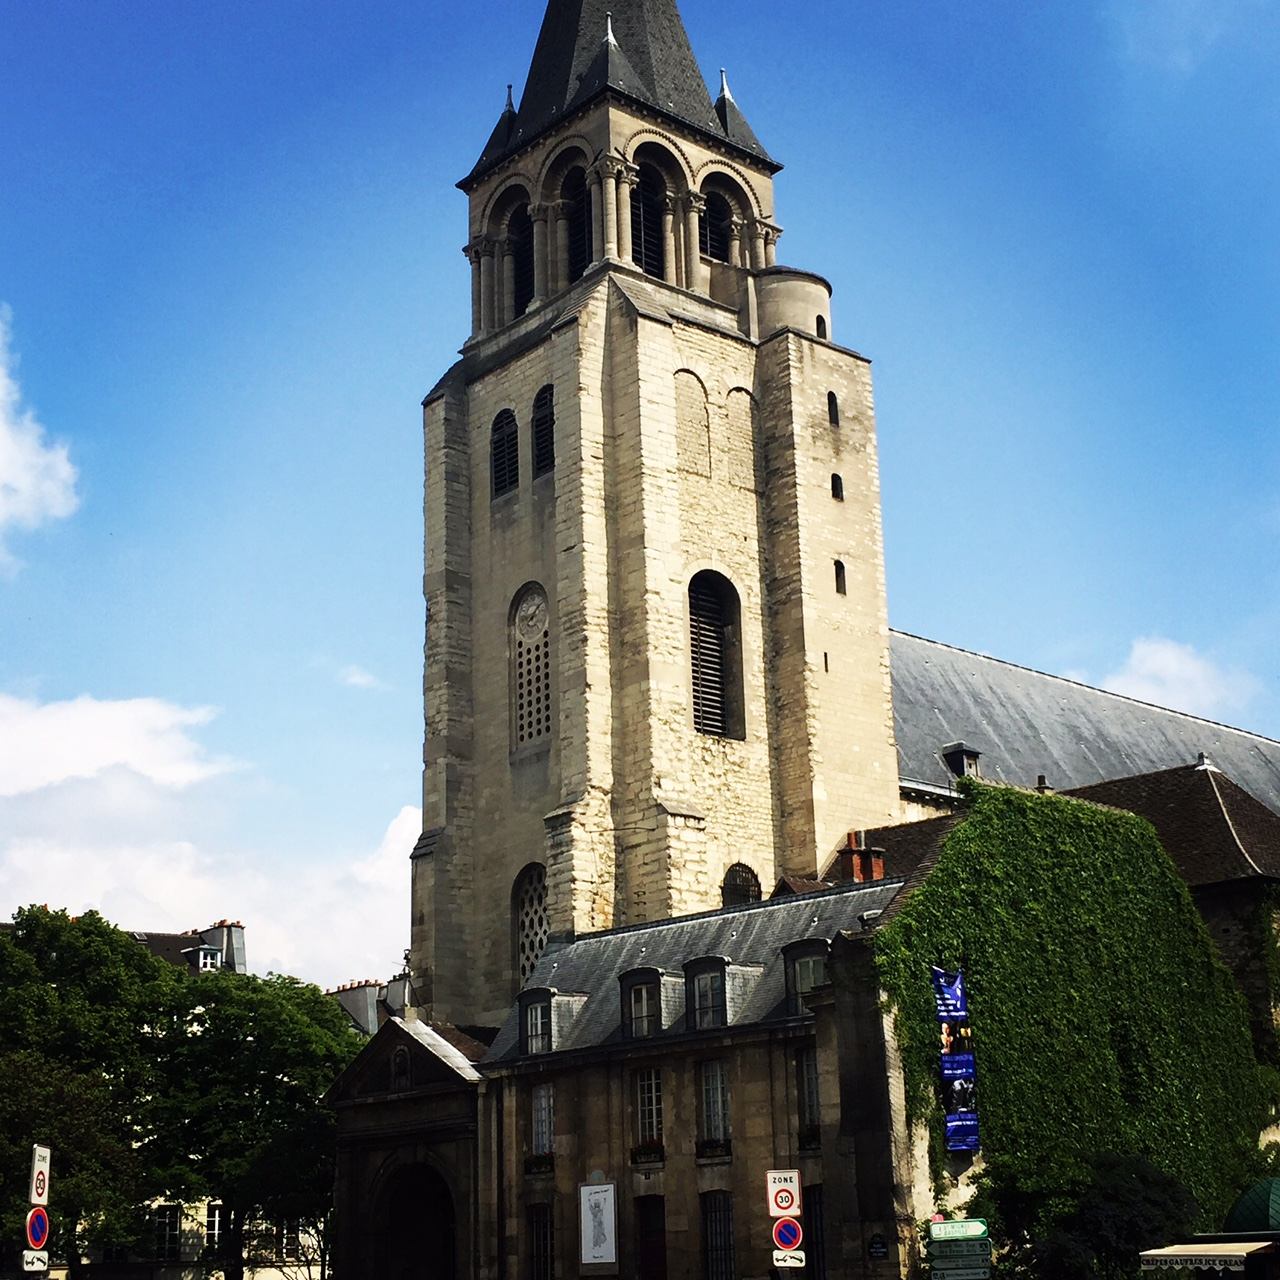 Jazz Festival - Church of Saint-Germain